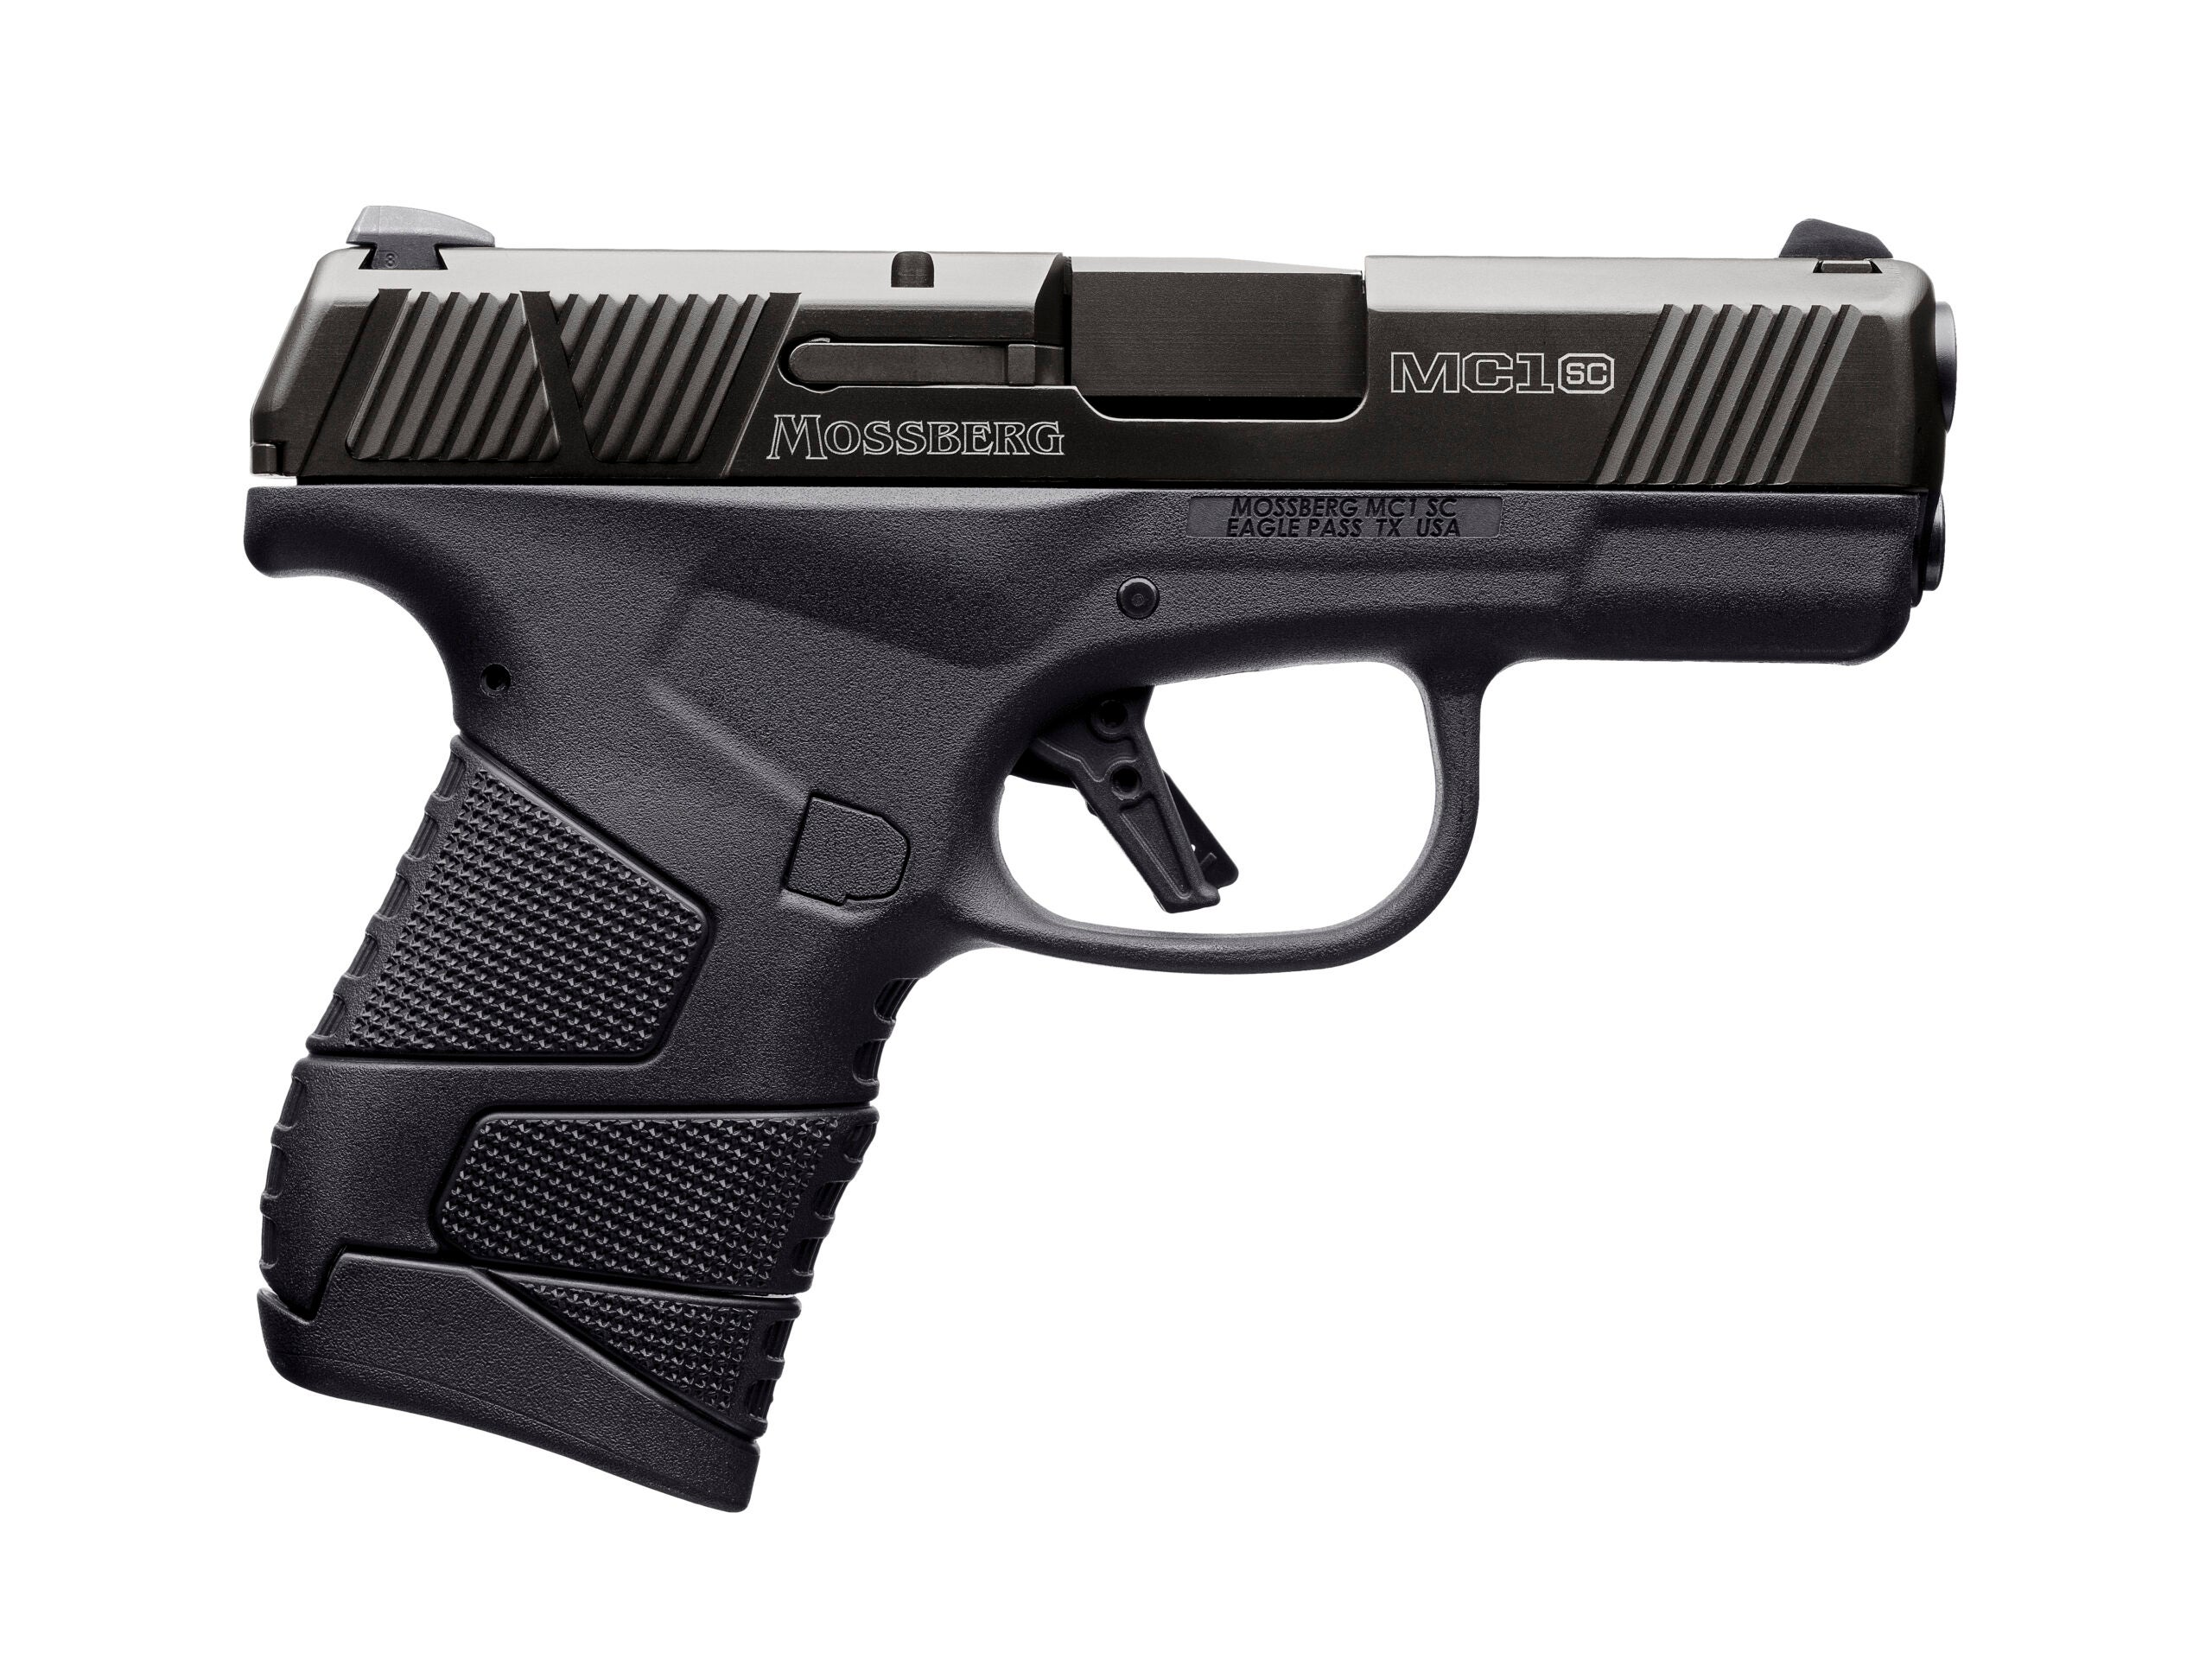 Mossberg Gets Into Handguns with the MC1sc Pistol